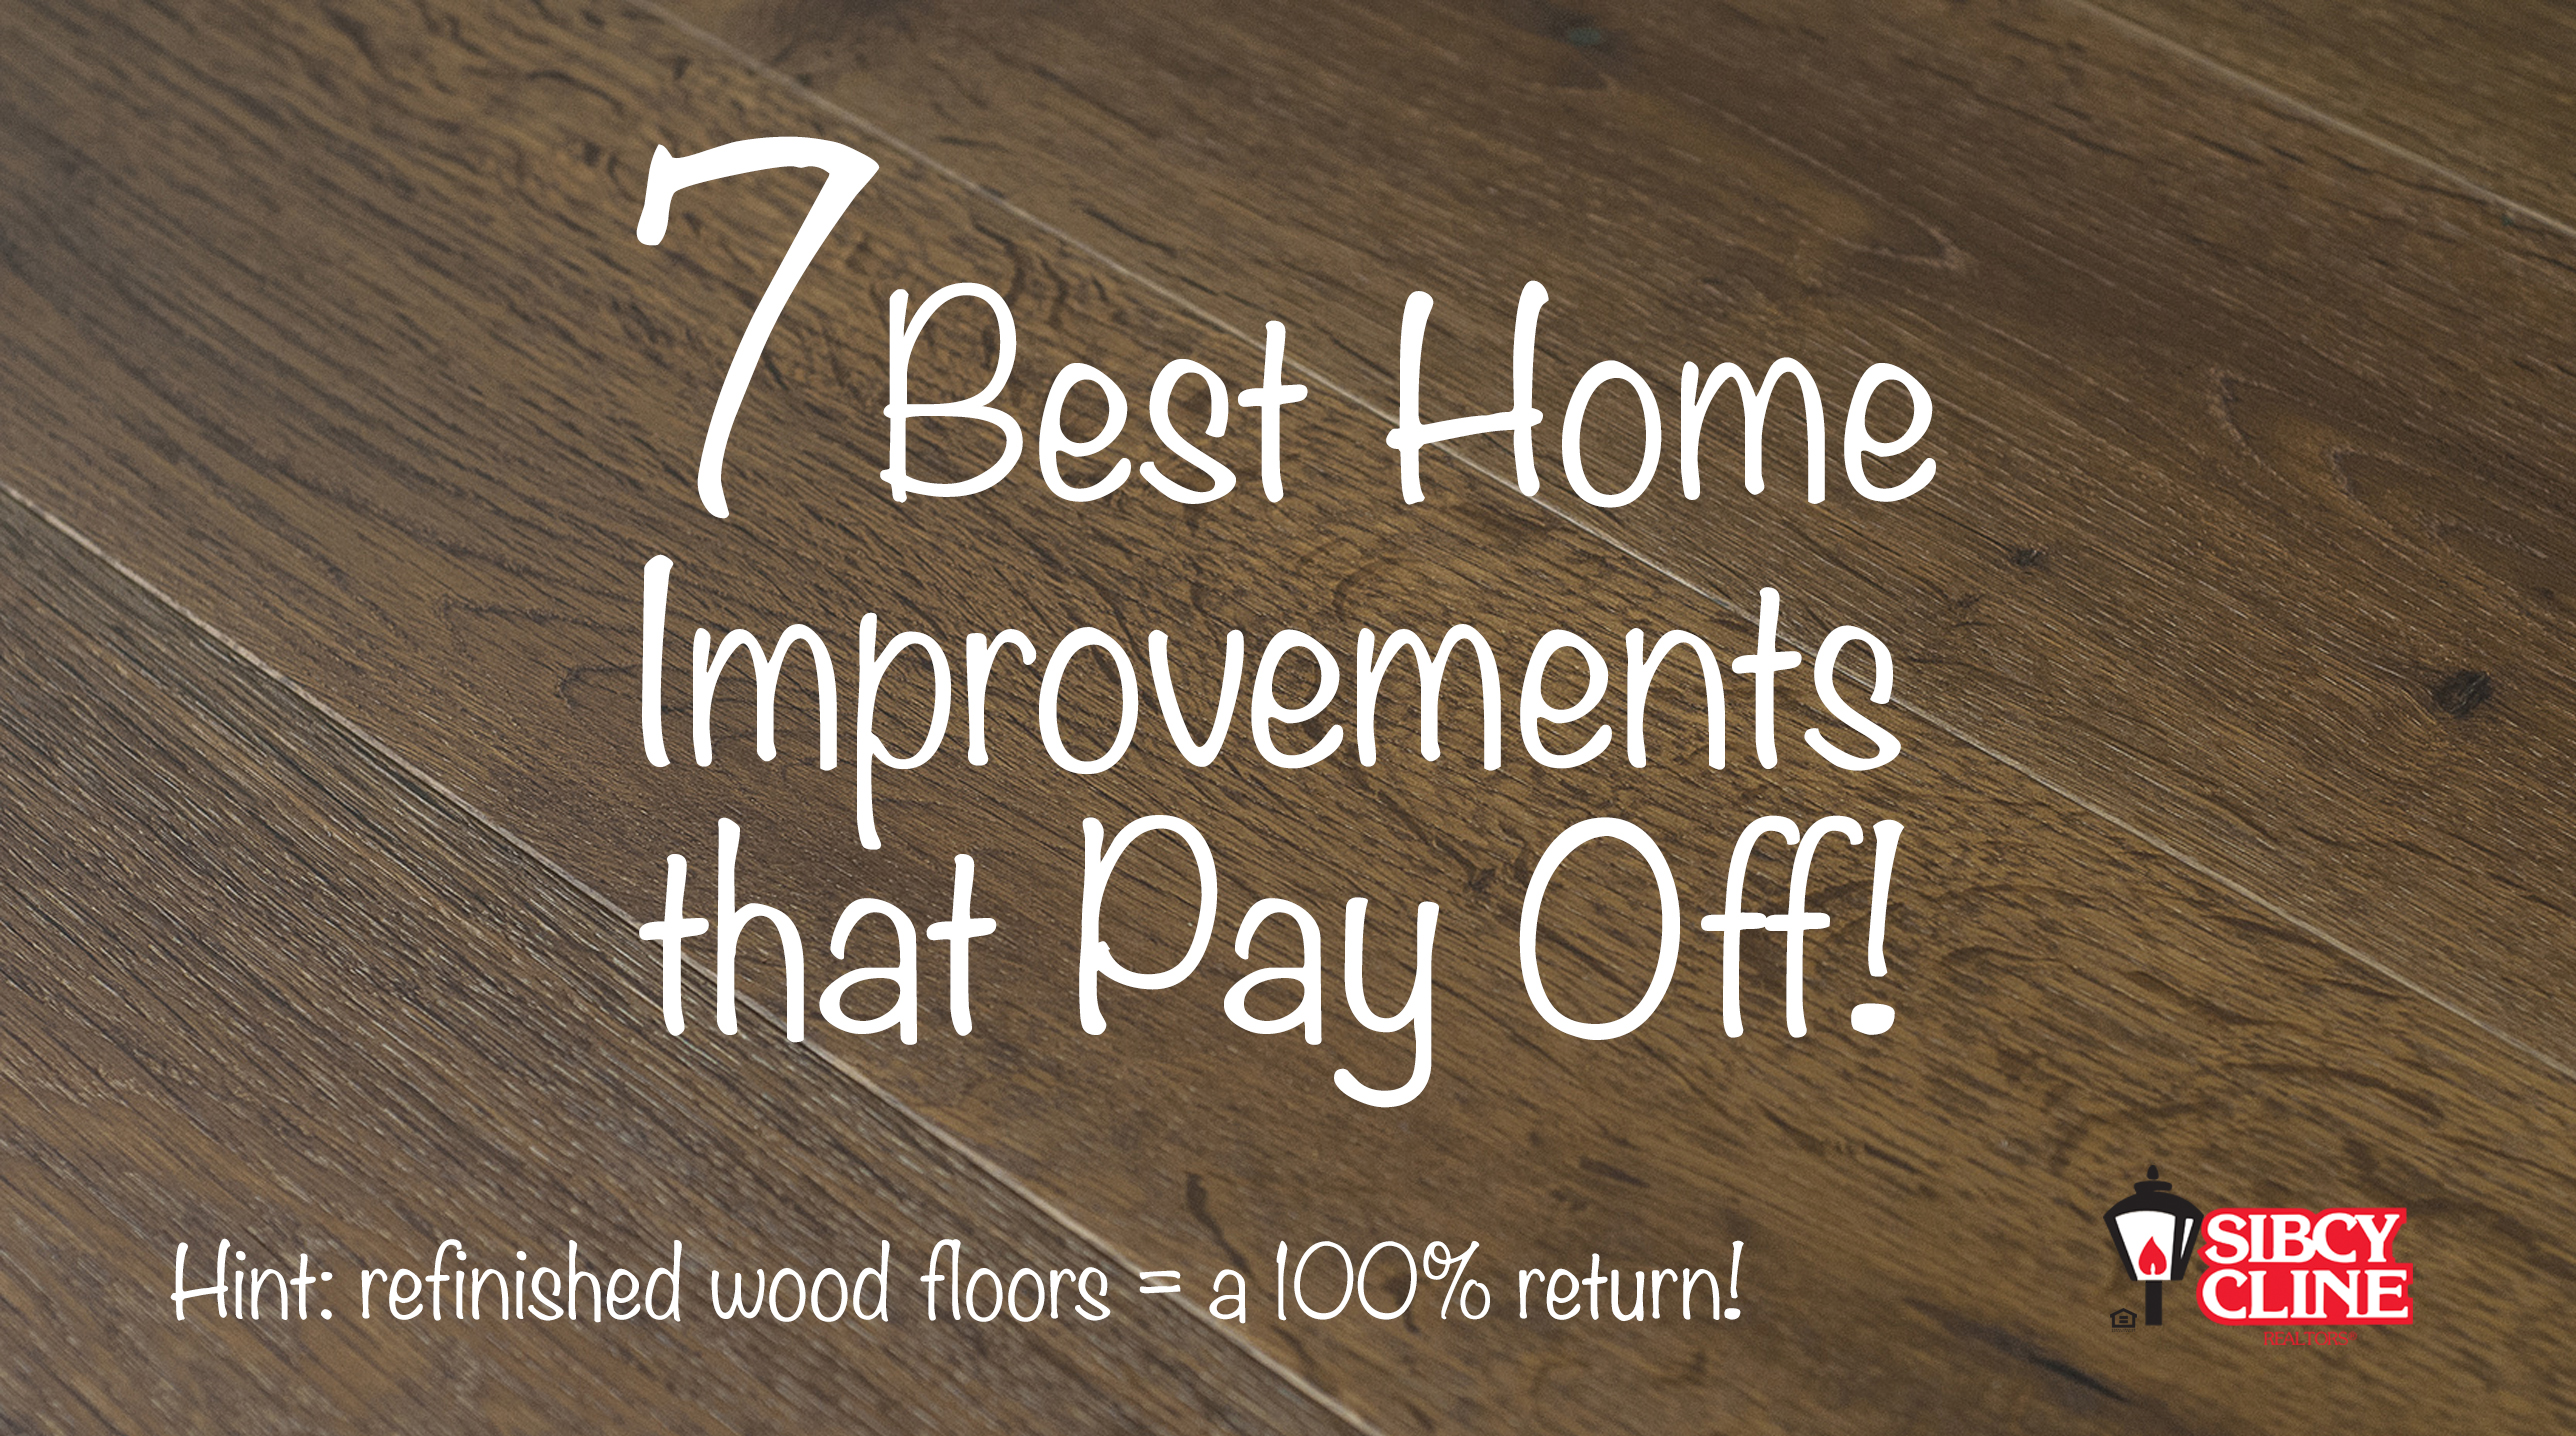 Seven best home improvements that pay off